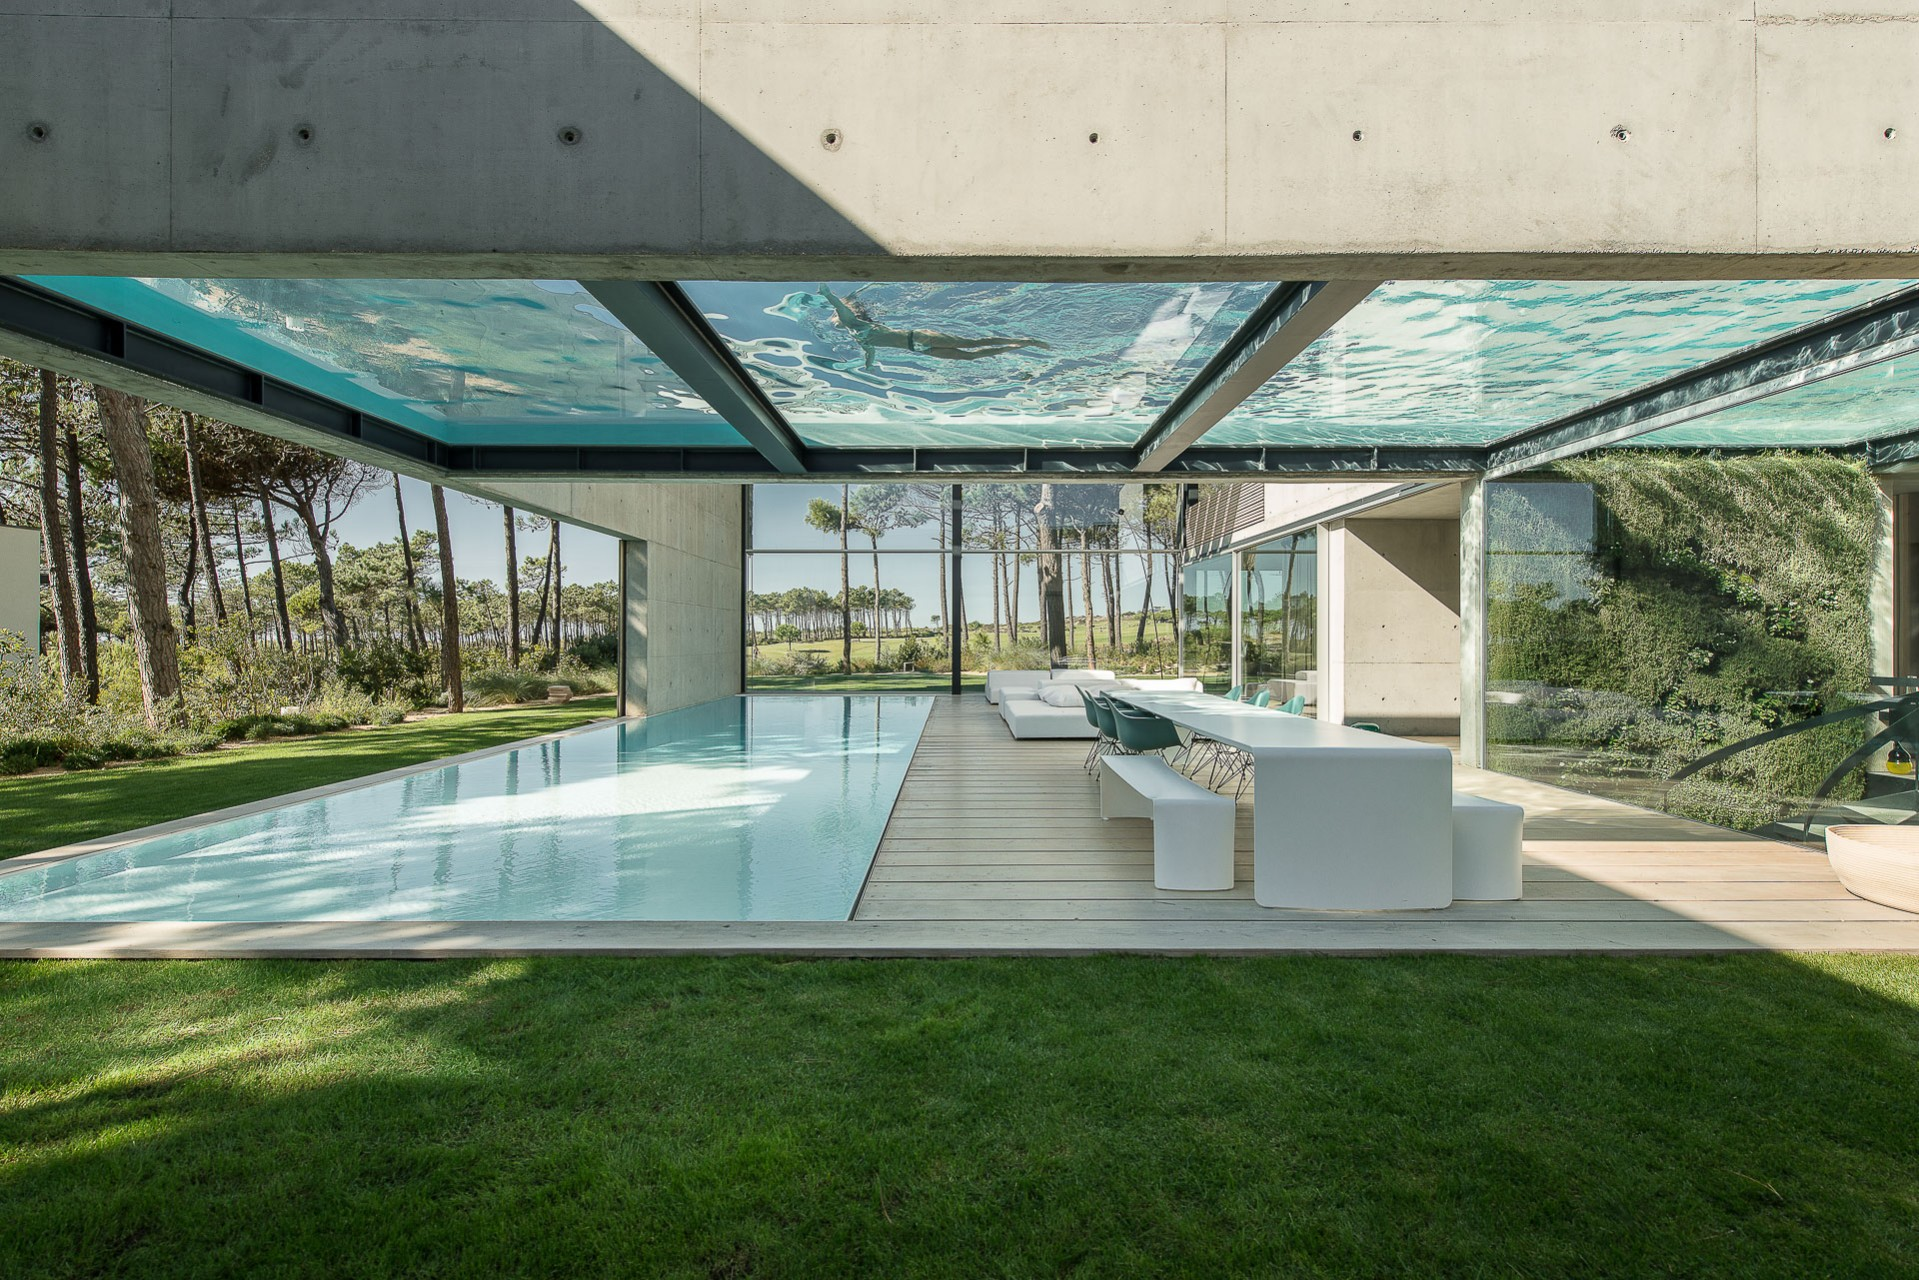 Two Exterior Pools Cross Each Other In The Wall House